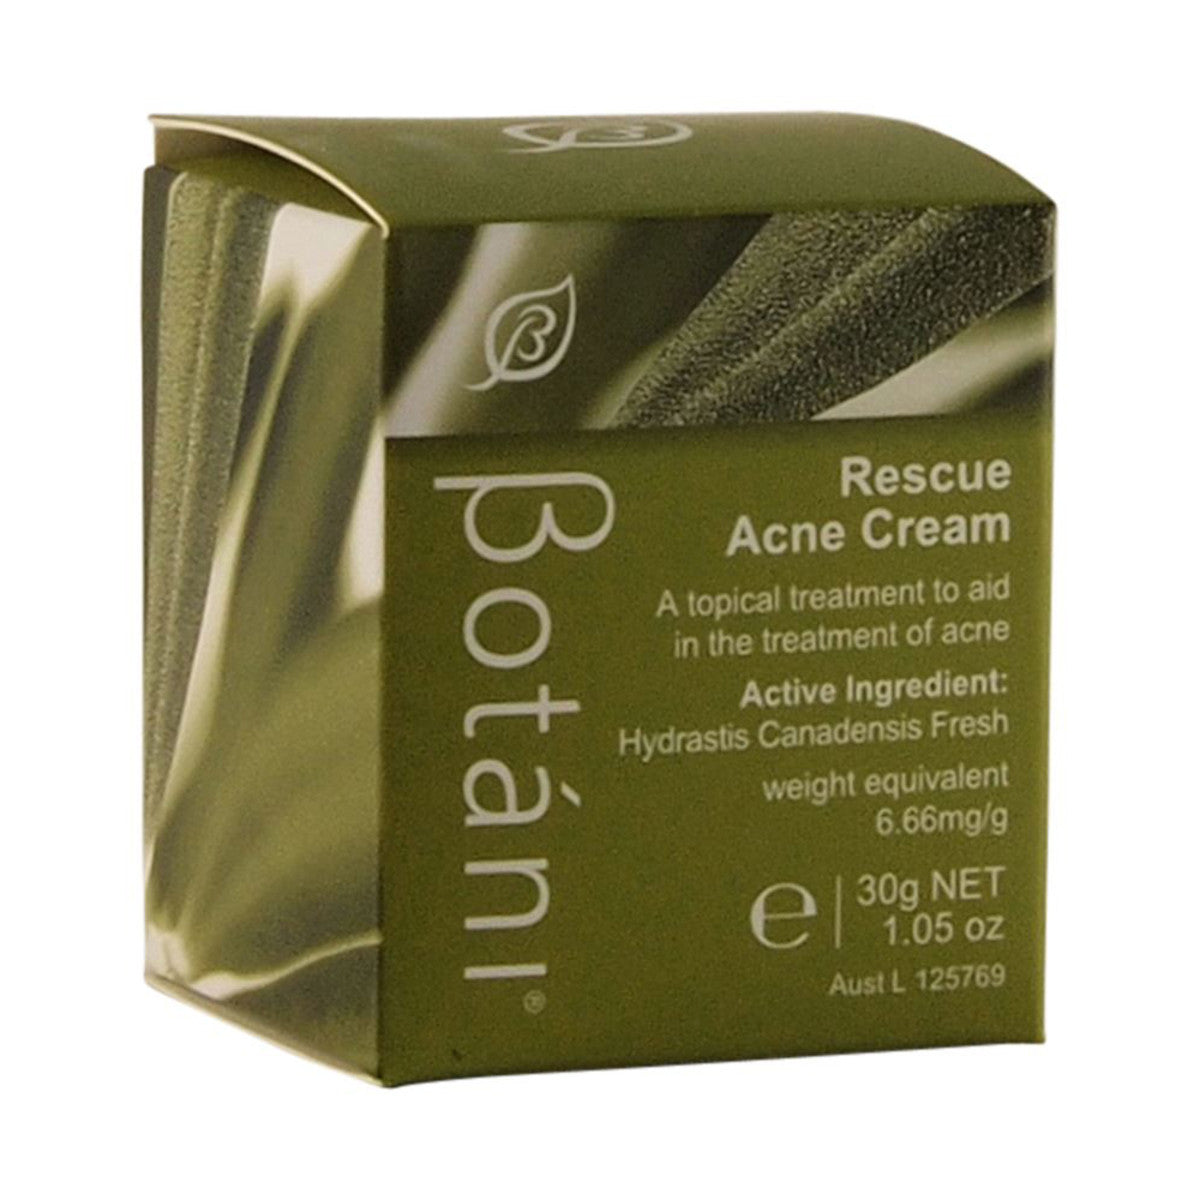 Botani rescue acne cream 30g australian organic products - Bathroom items that start with g ...